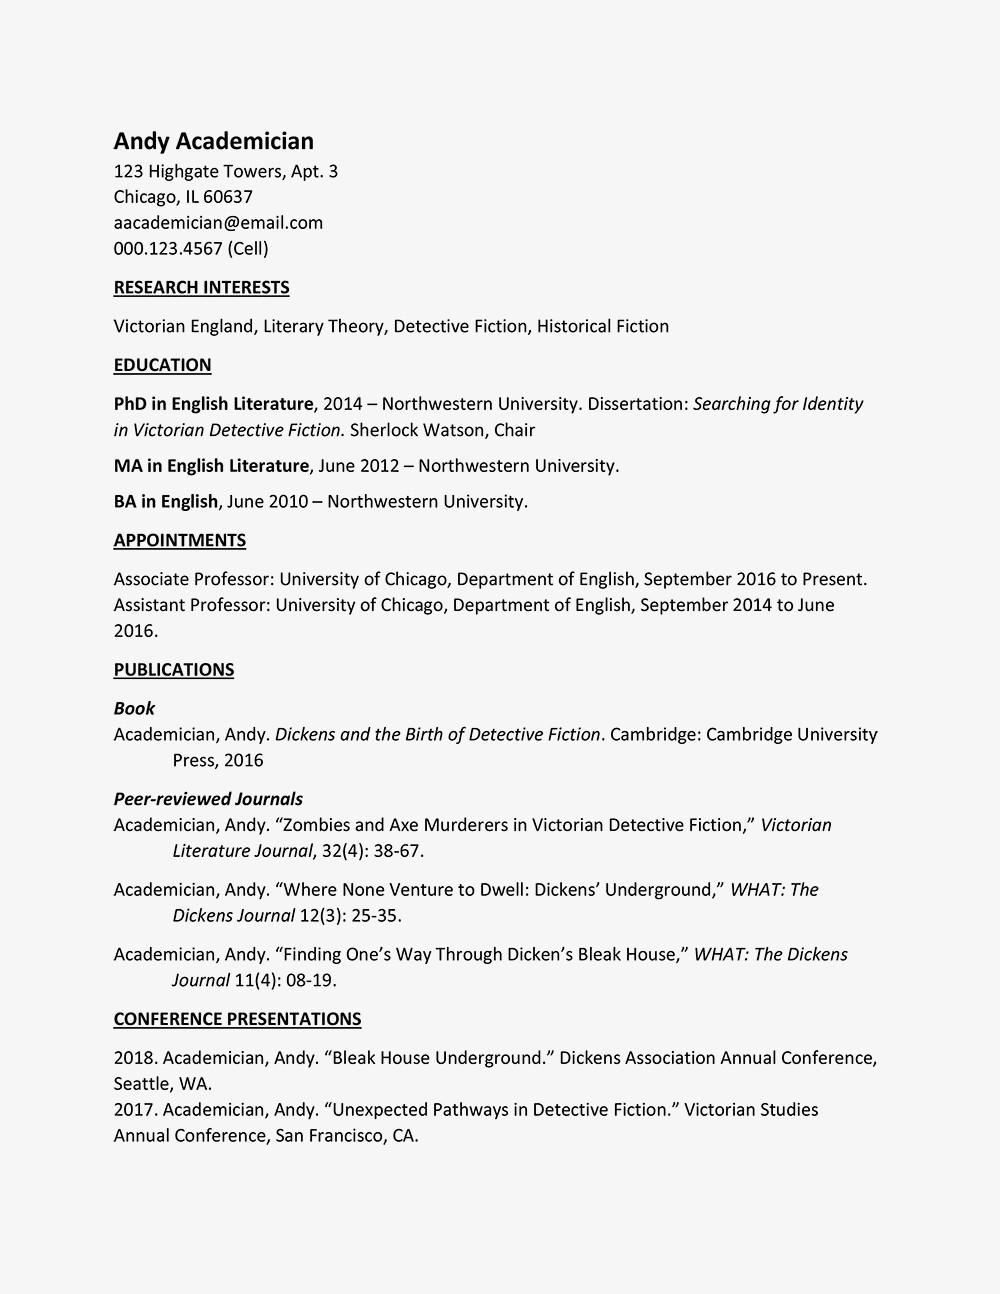 Cv Template Uk 2018 Cool Free Microsoft Curriculum Vitae Templates Of